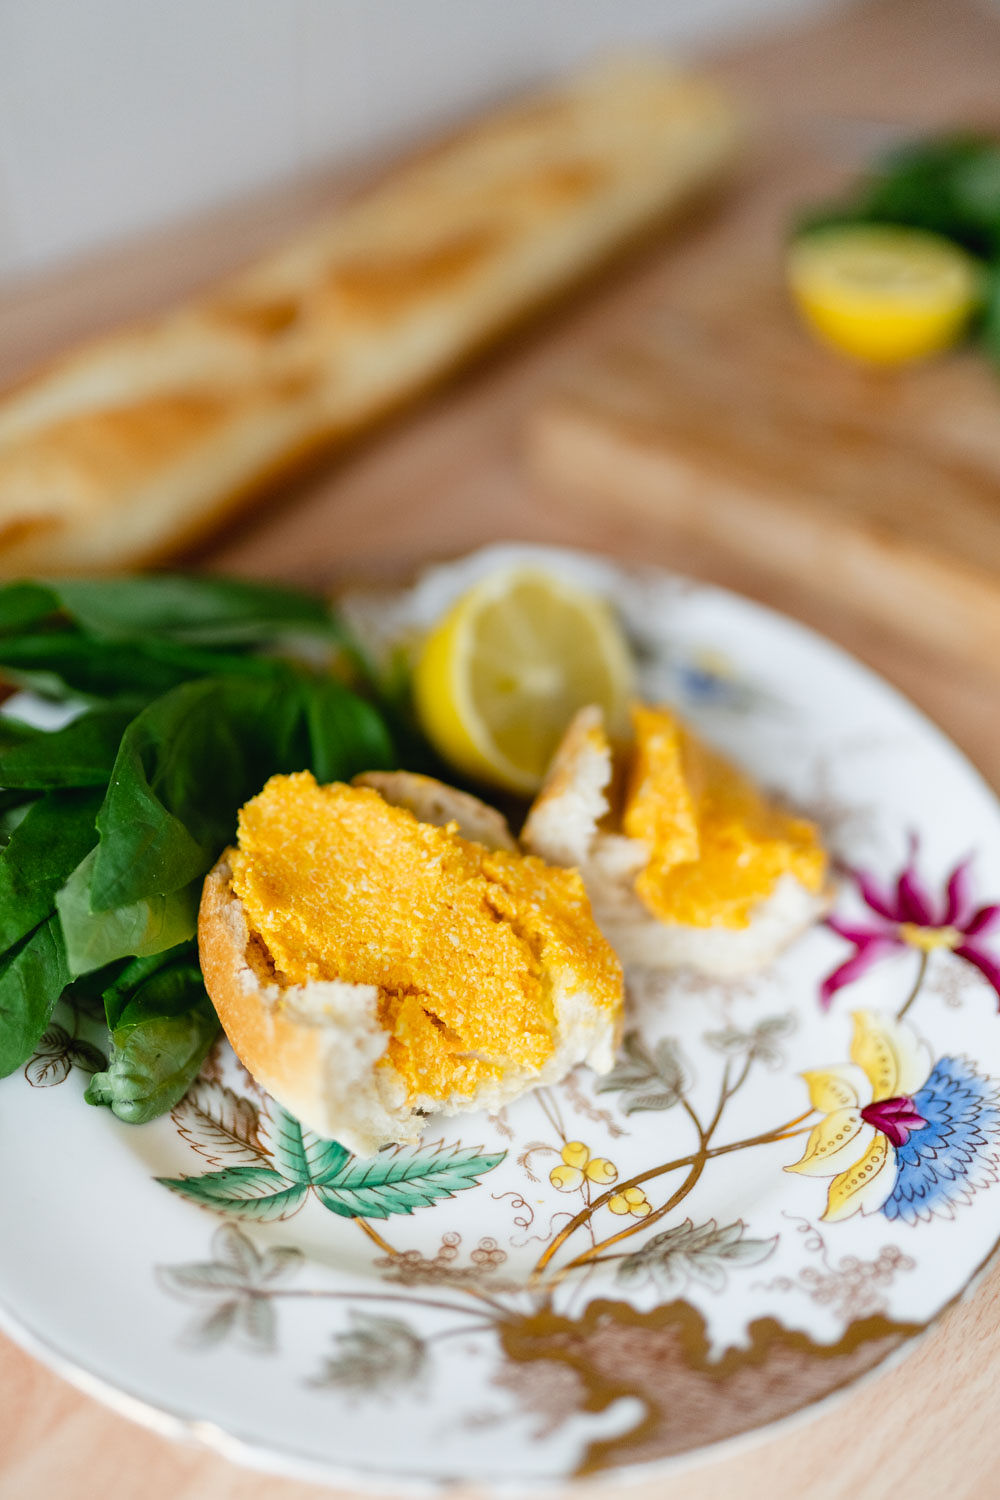 A plate with Victorian floral design. On it is a snack of bread with carrot hummus garnished with fresh basil and lemon.